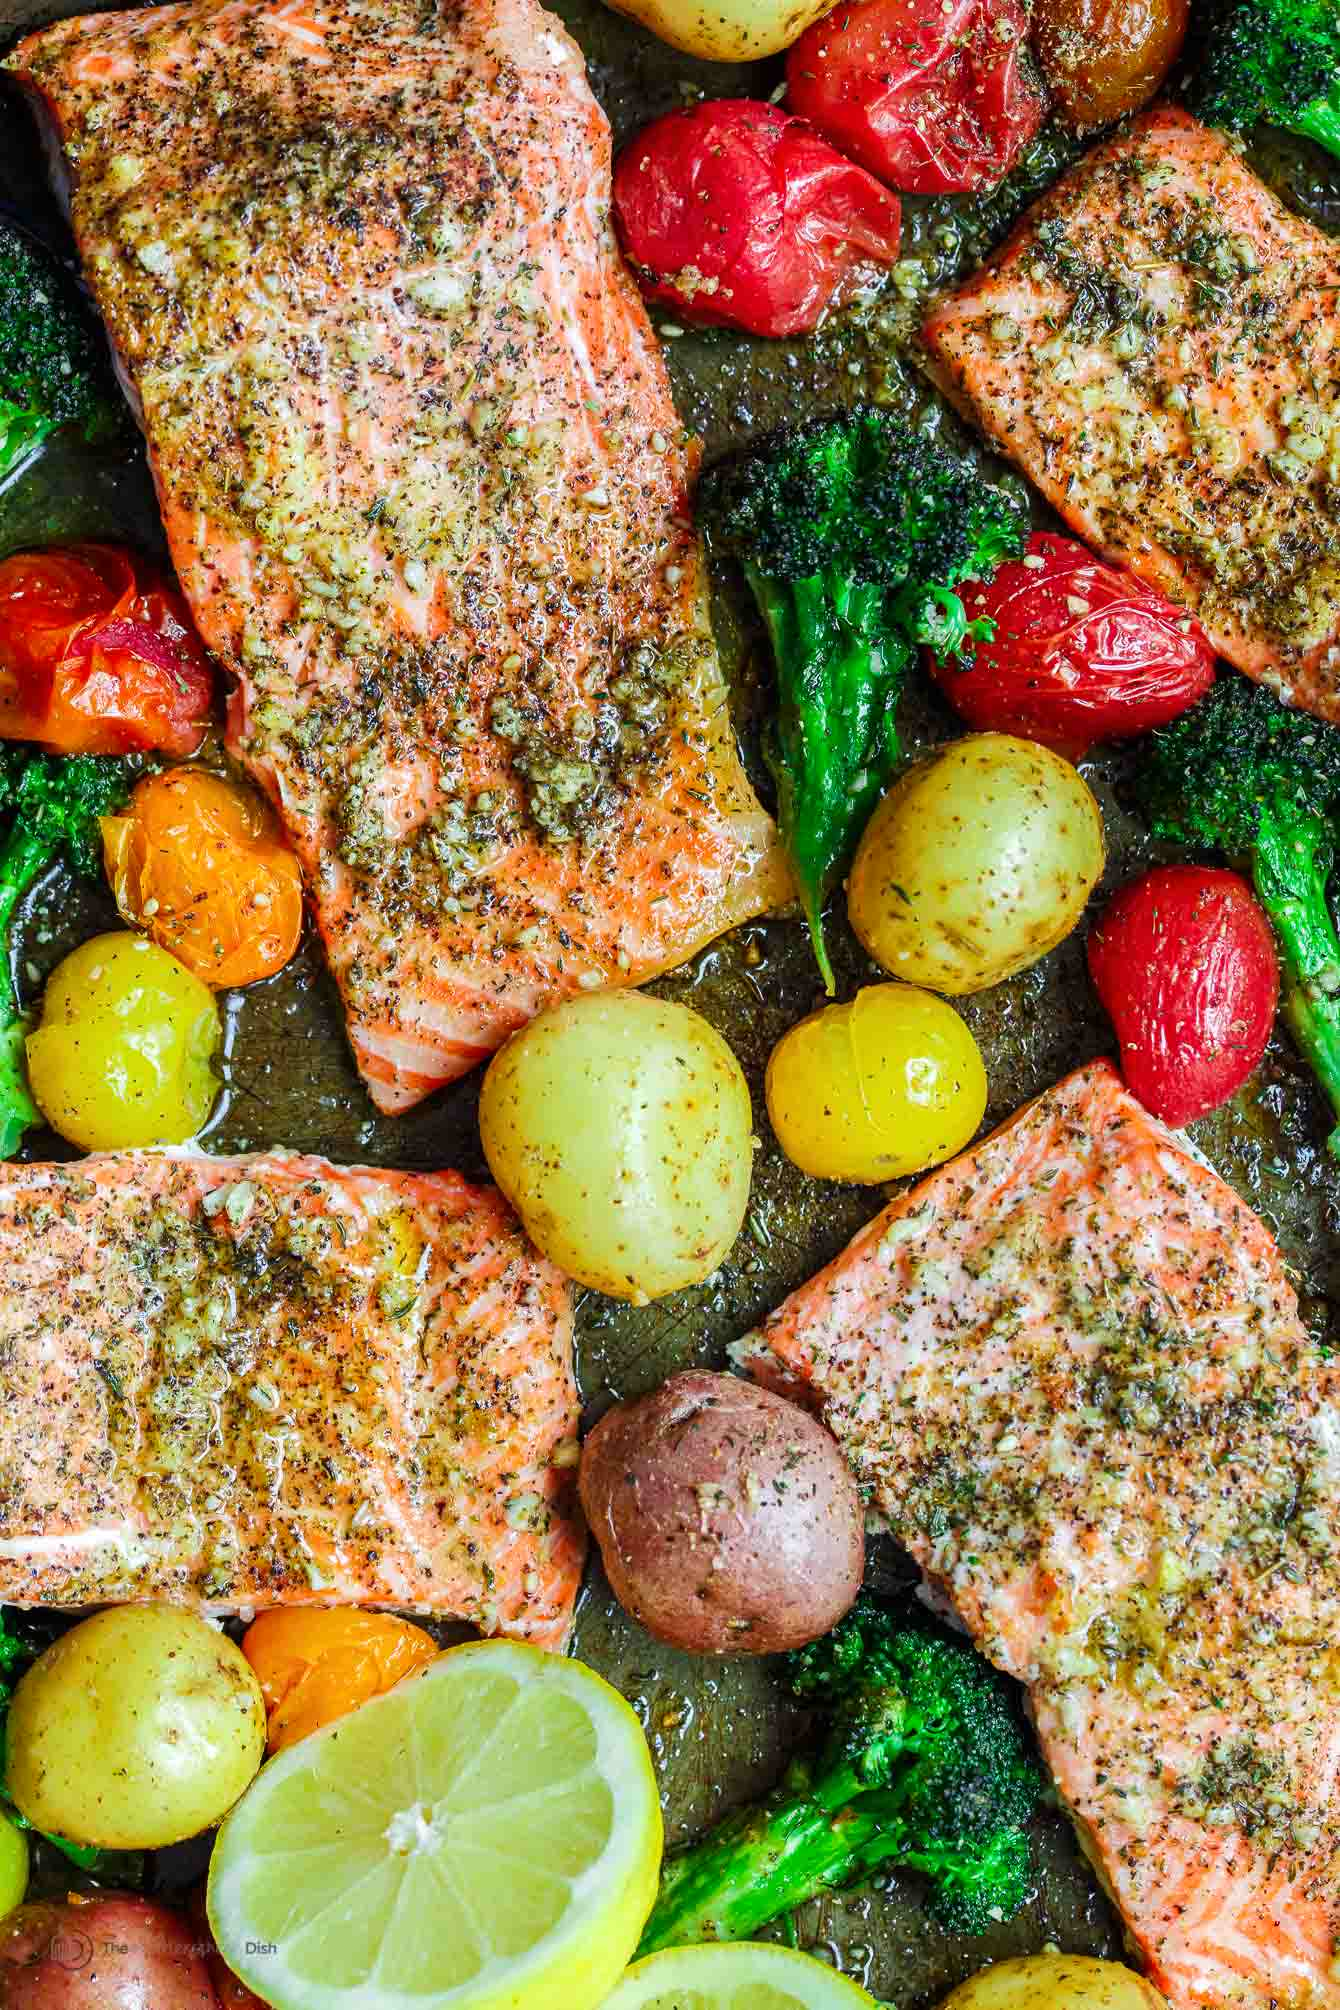 Za'atar garlic salmon in a pan with potatoes, broccoli and colorful grape tomatoes